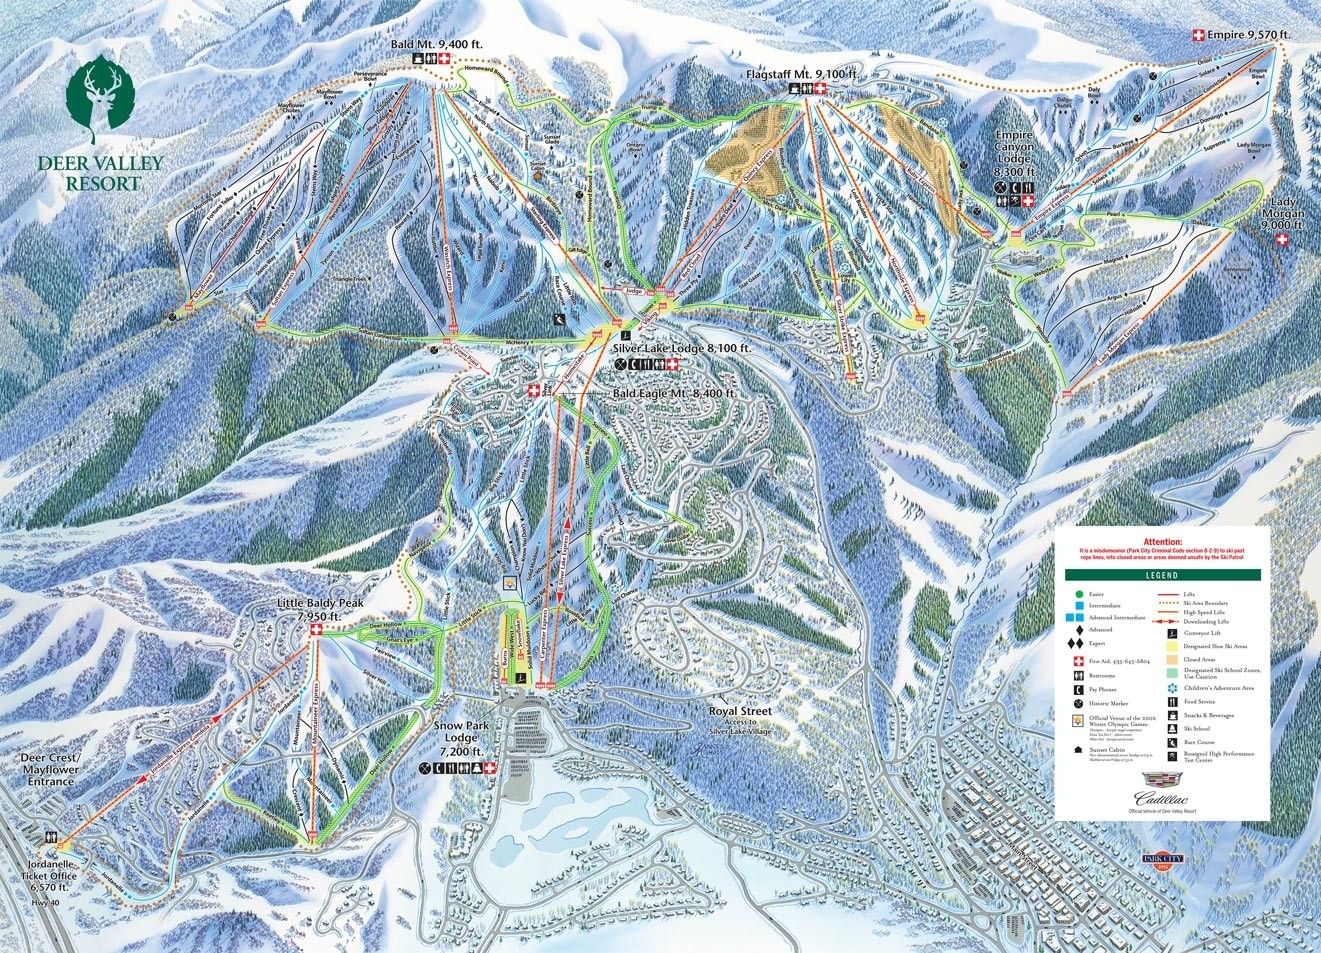 Pistenplan von Deer Valley